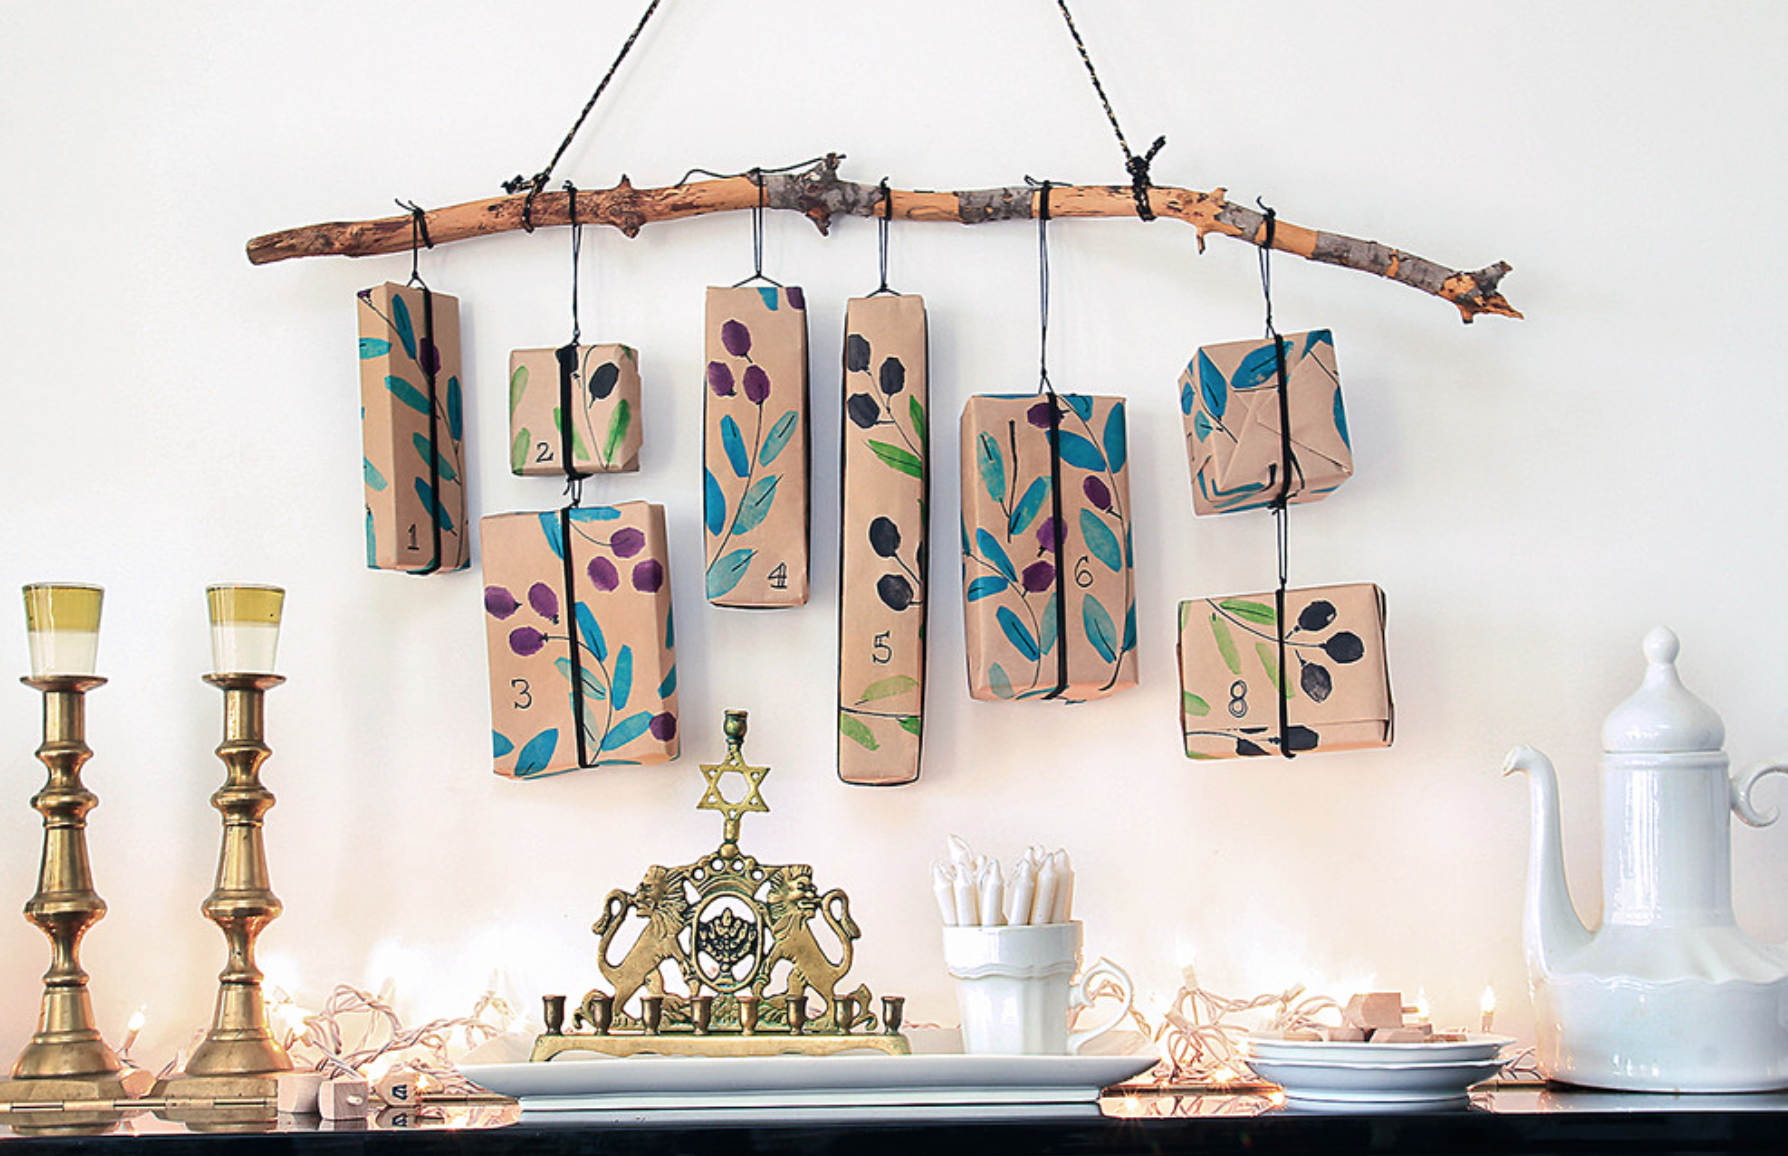 14 Festive Hanukkah Decor Ideas